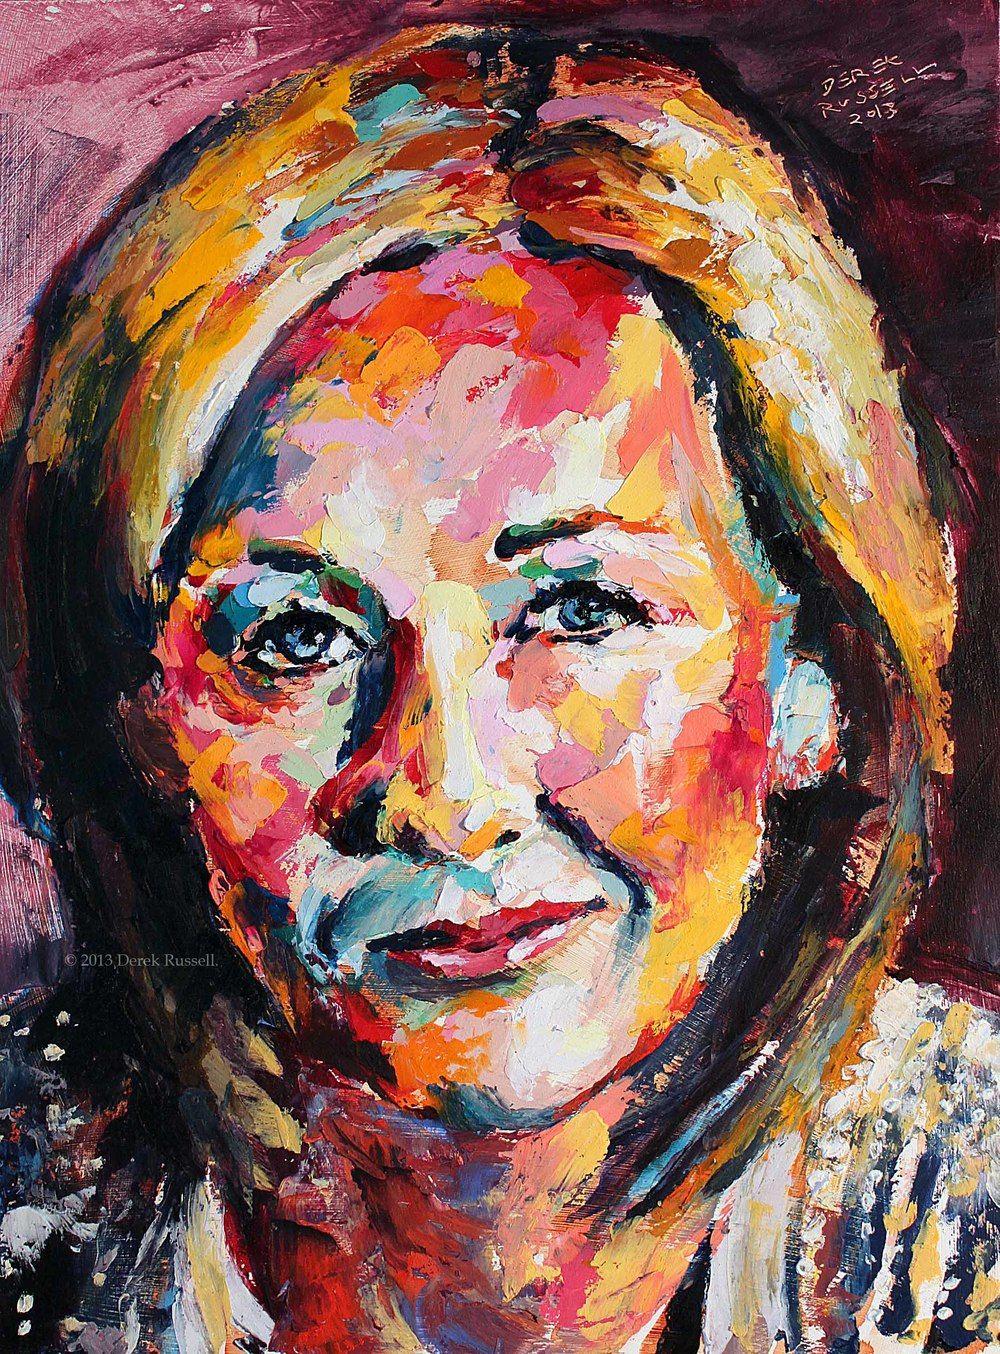 Rowling - Original Oil Painting Vibrant Art